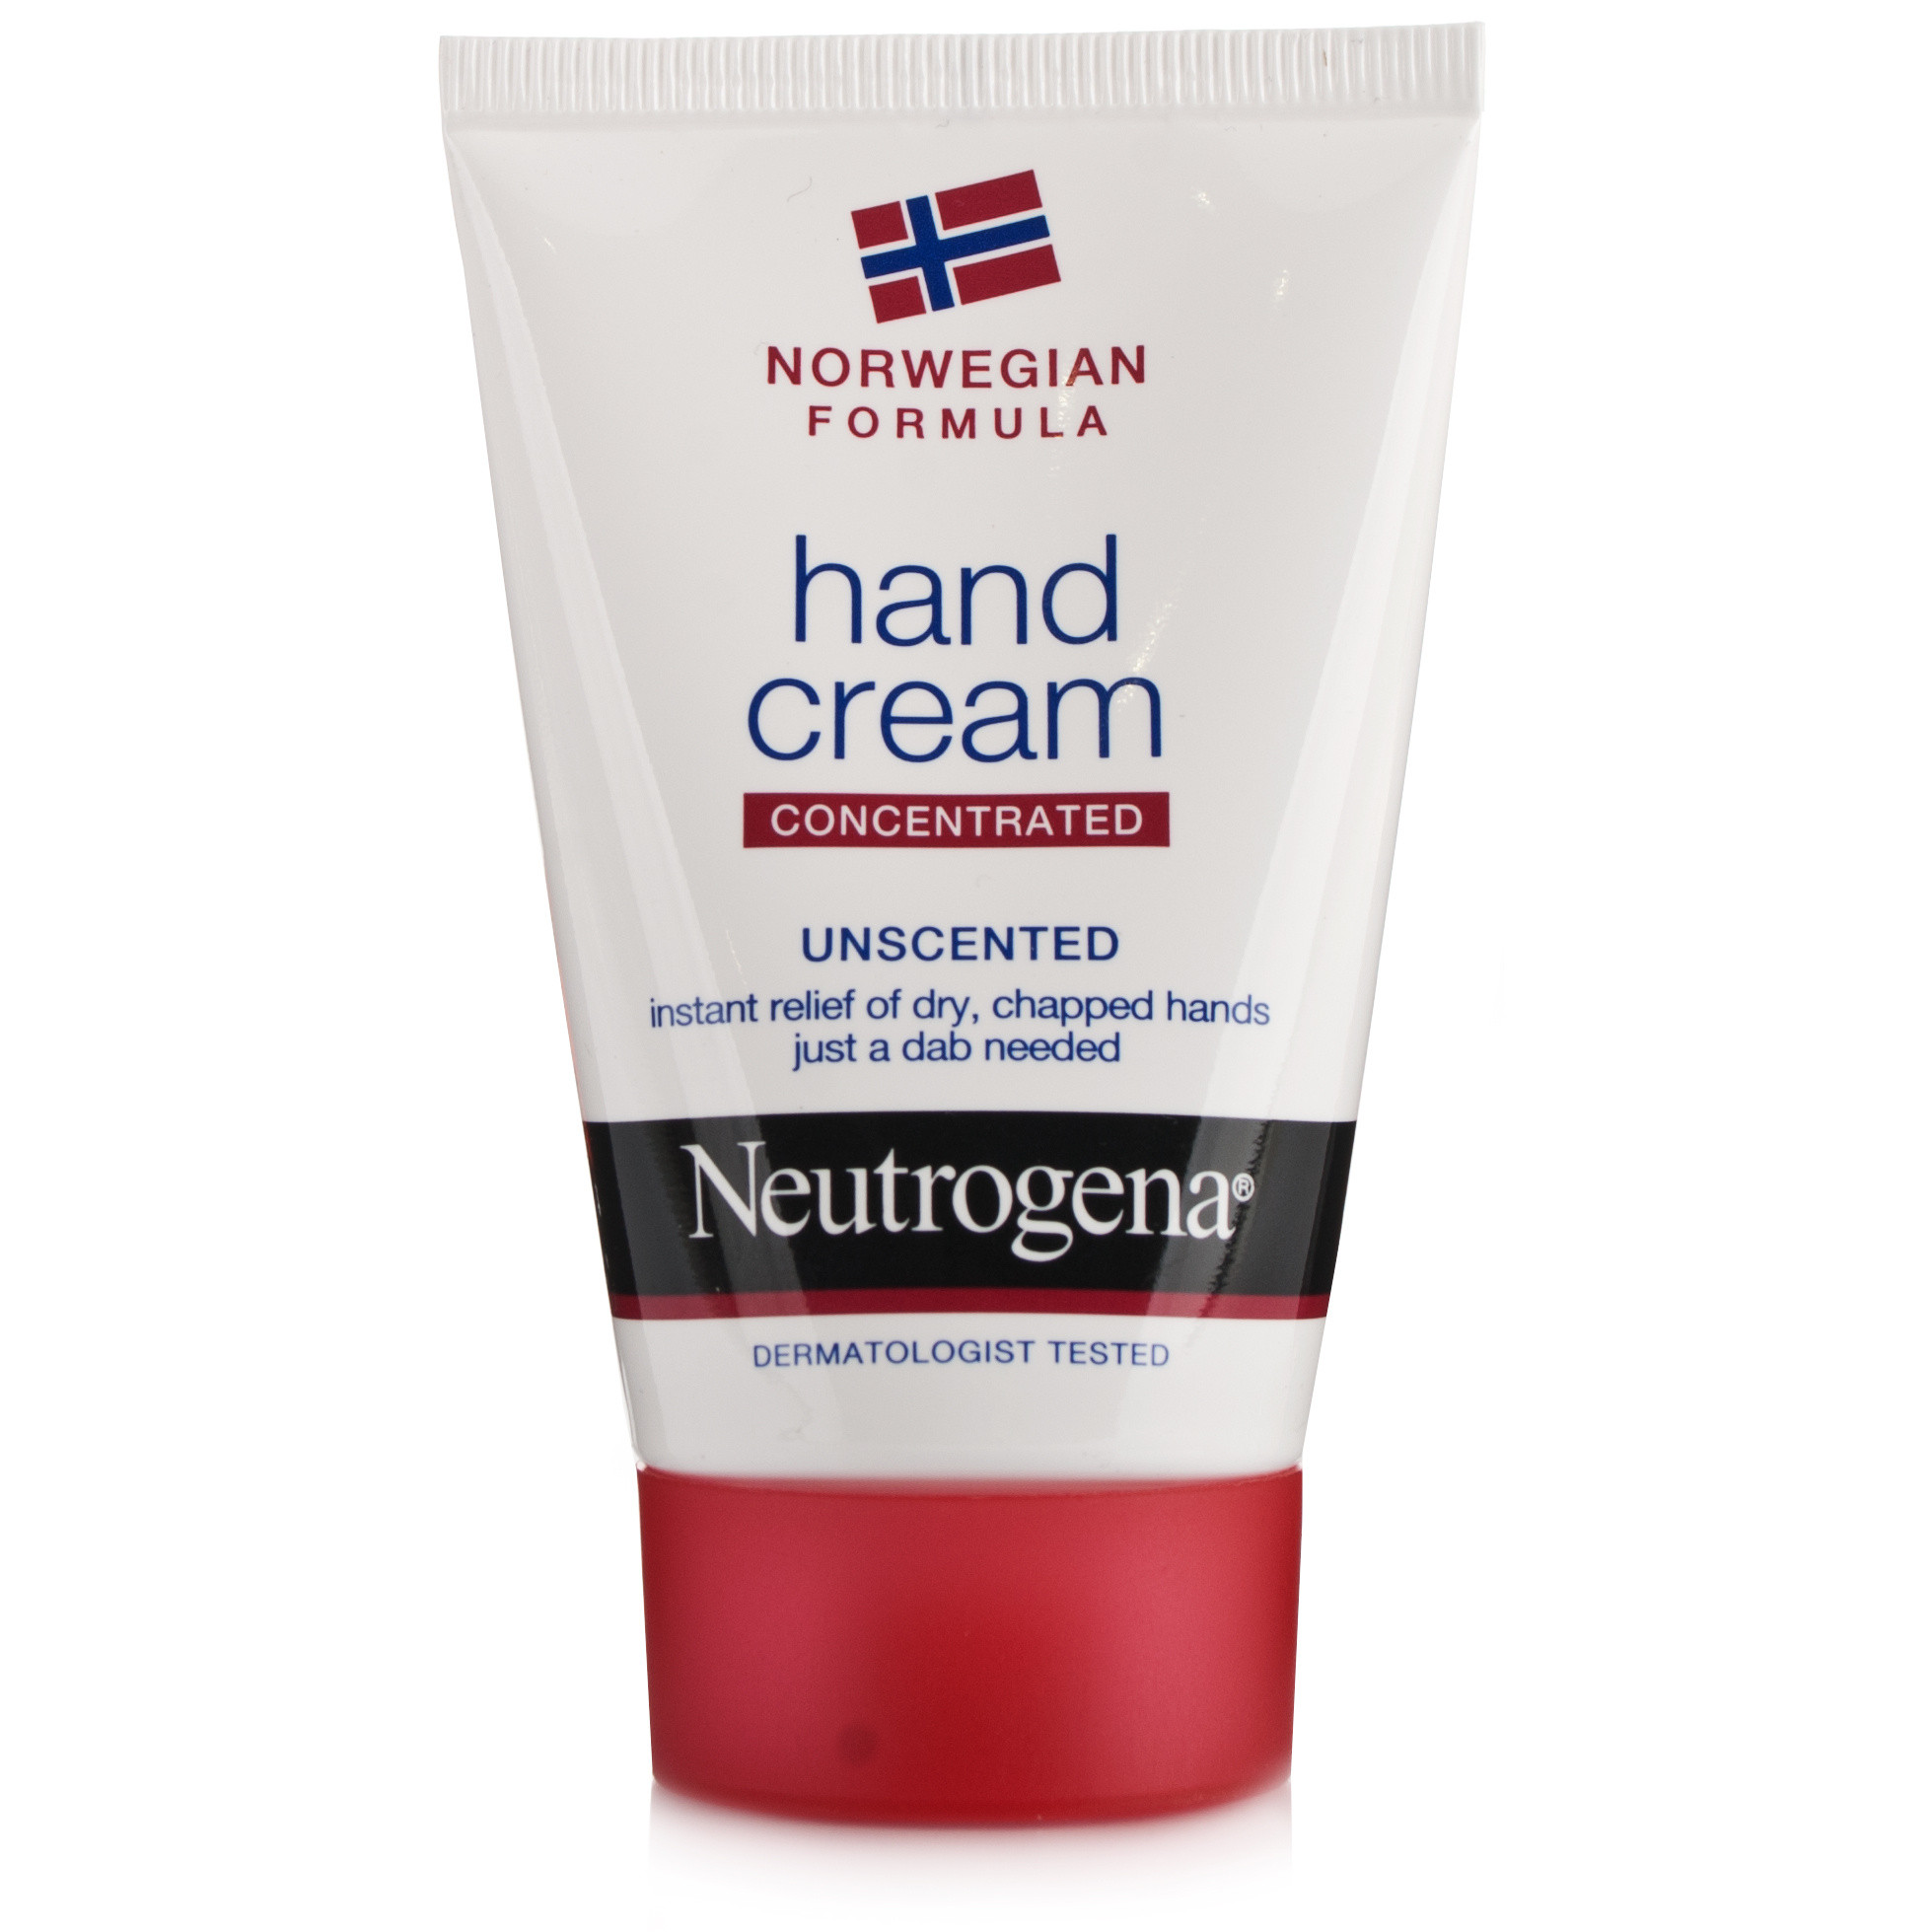 Neutrogena Norwegian Formula Hand Cream (Unscented)